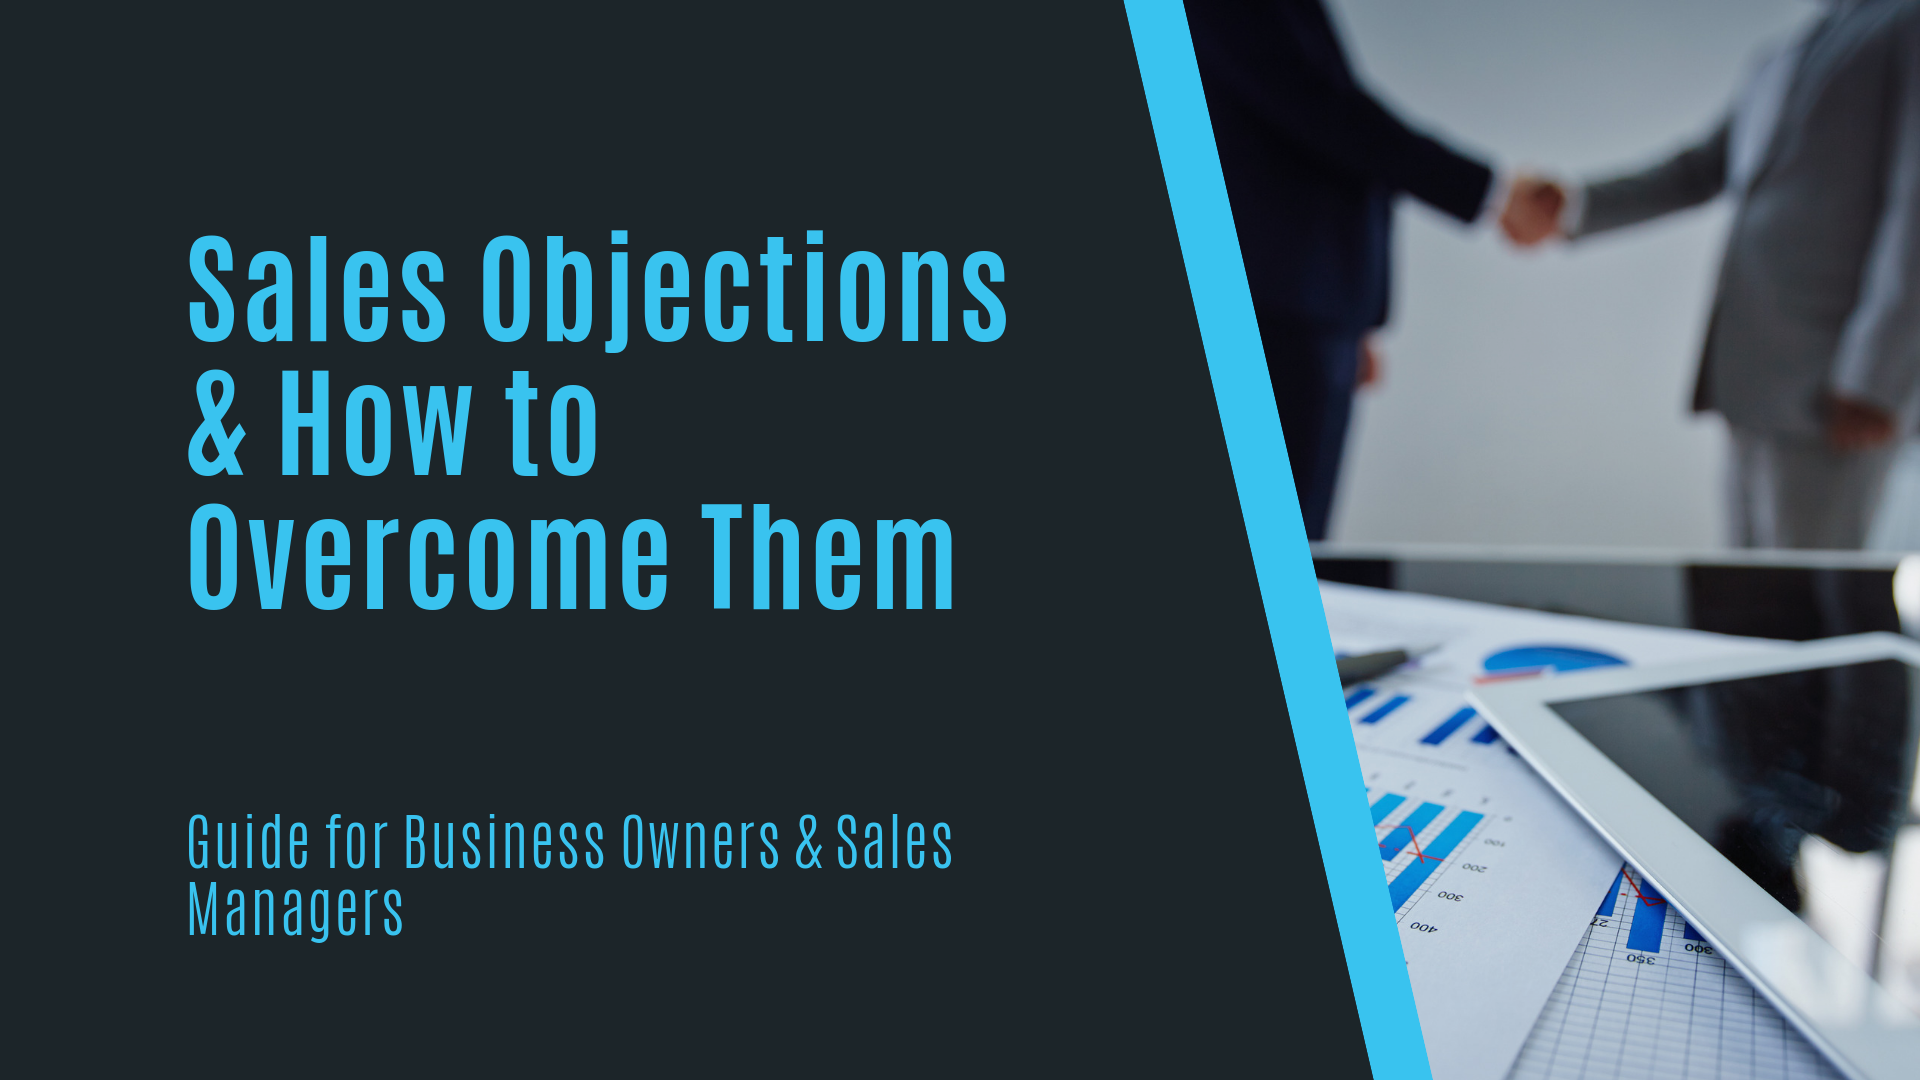 Sales Objections and How to Overcome Them